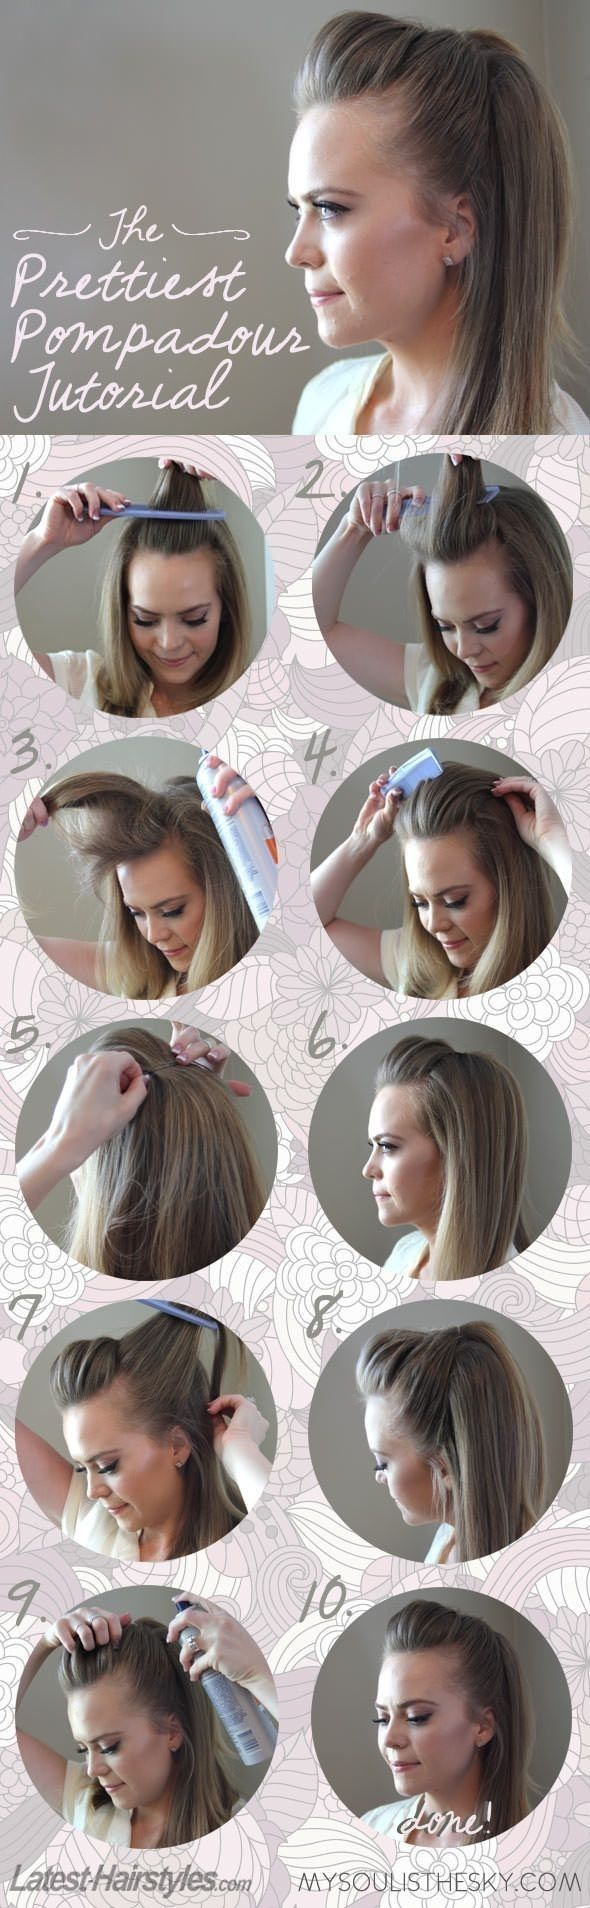 A few minutes hairstyles hair style easy diy hairstyles and makeup